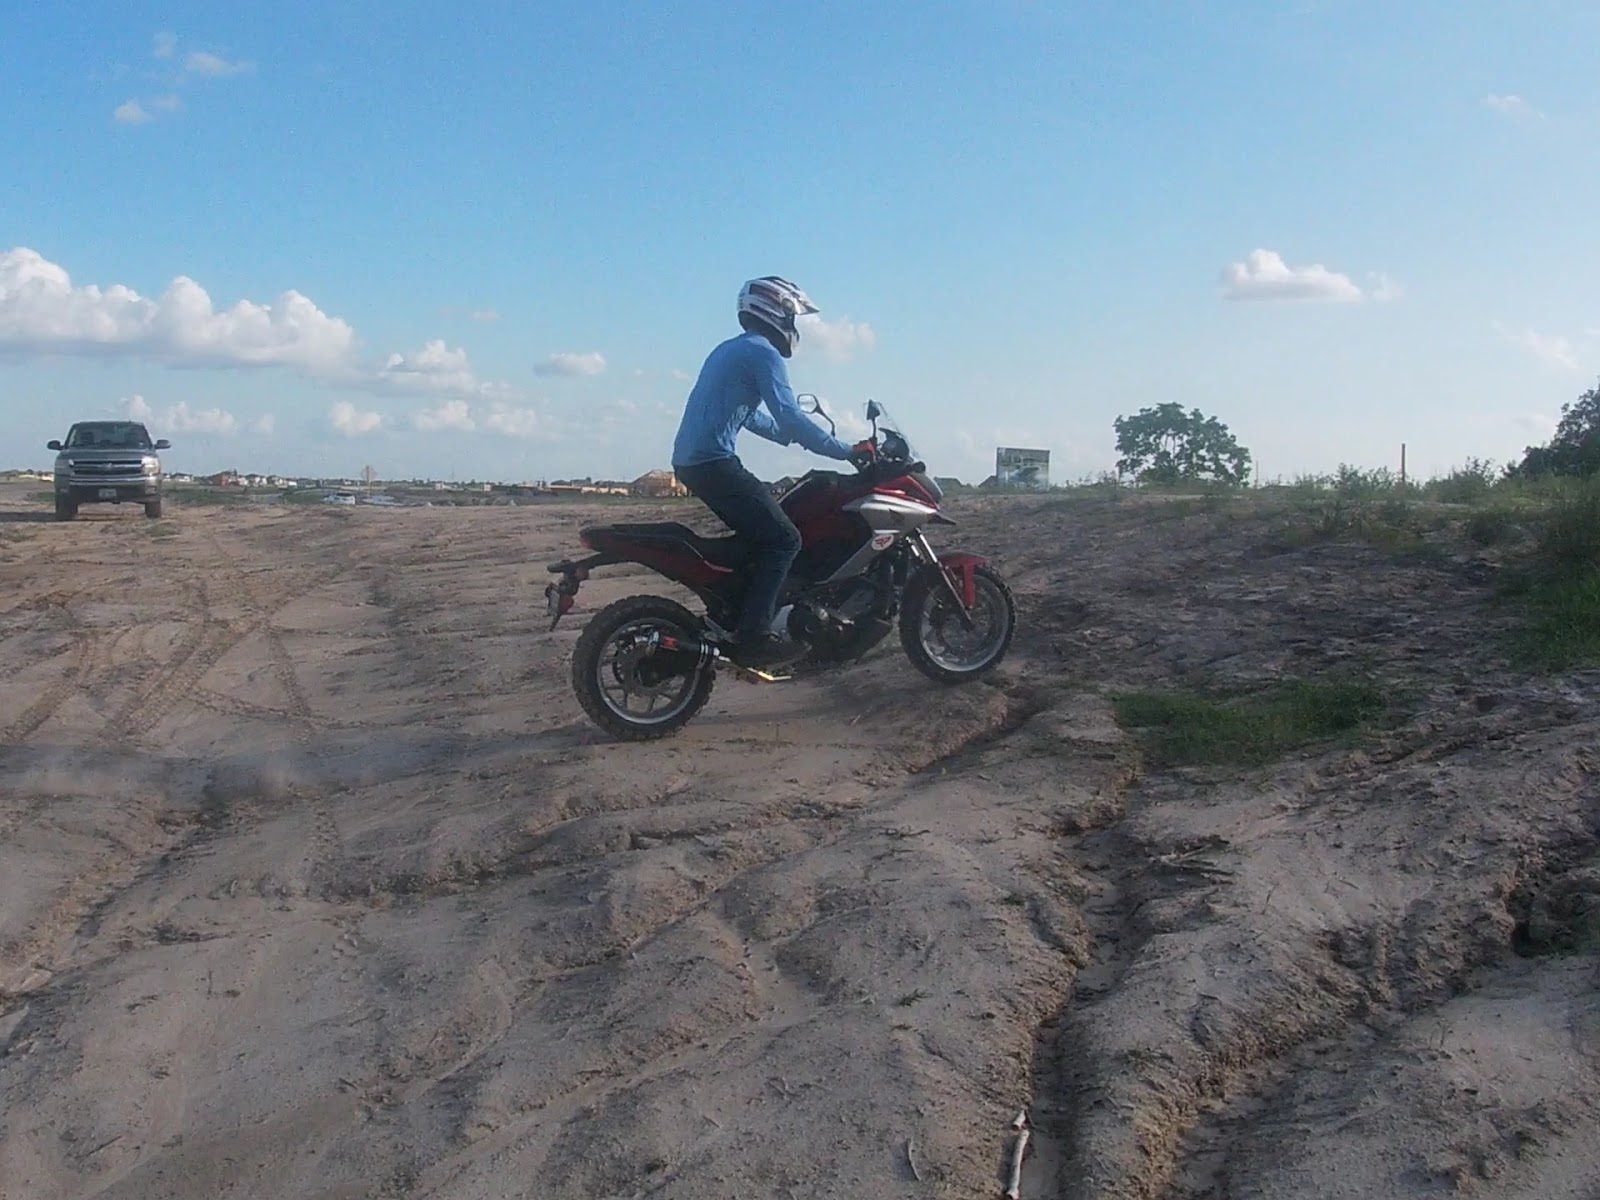 Ride with Honda NC750x and NC700x